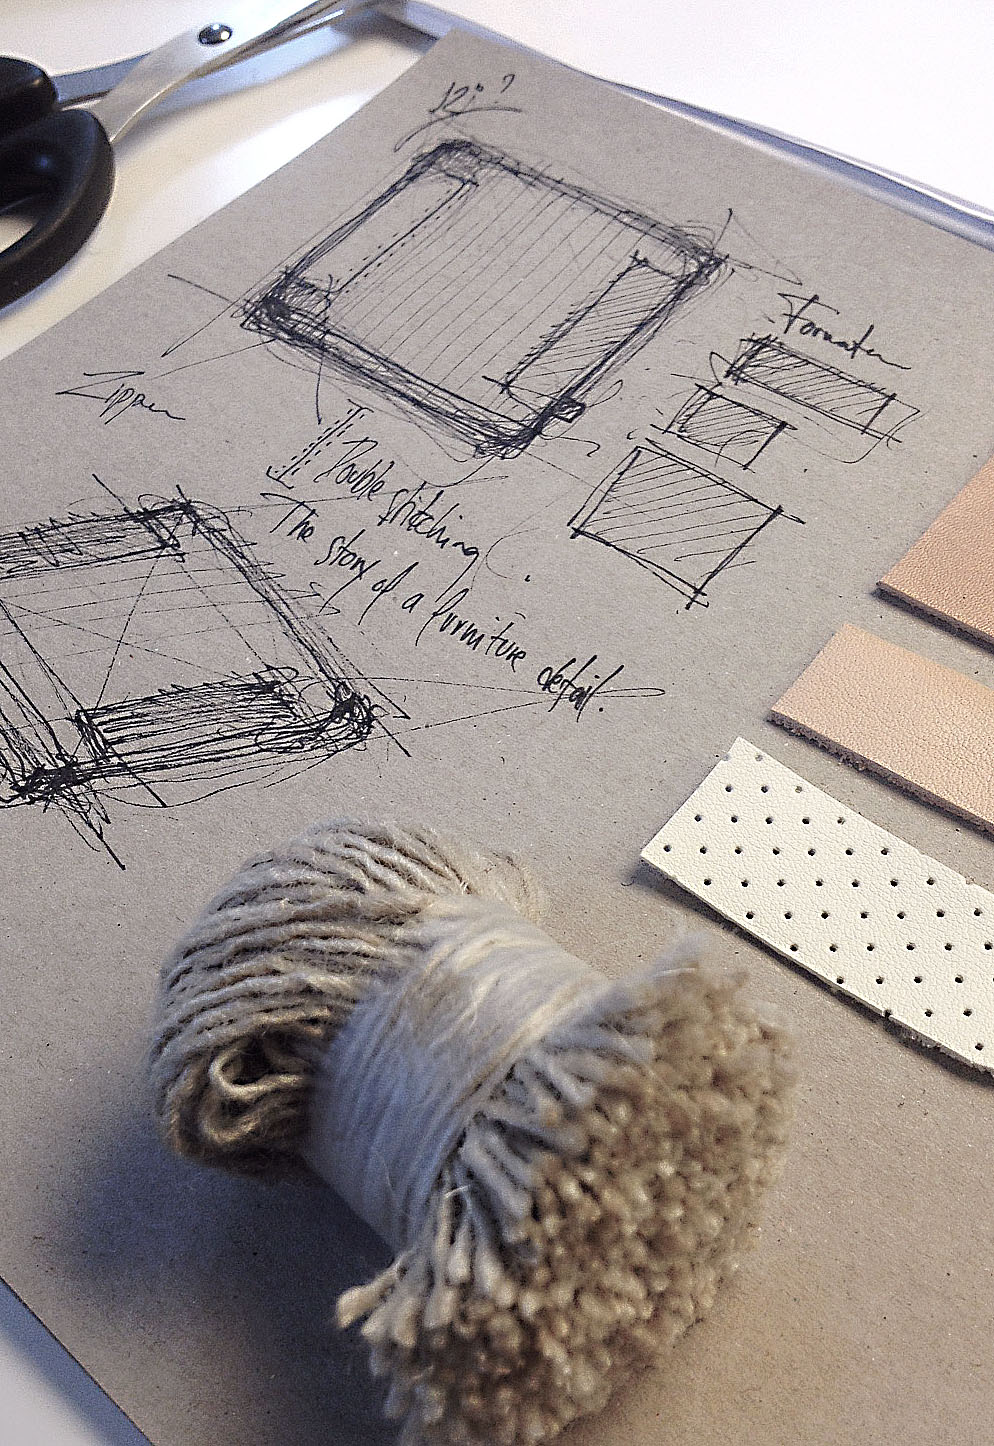 Design sketch and materials used for the Double Stitch Cushion